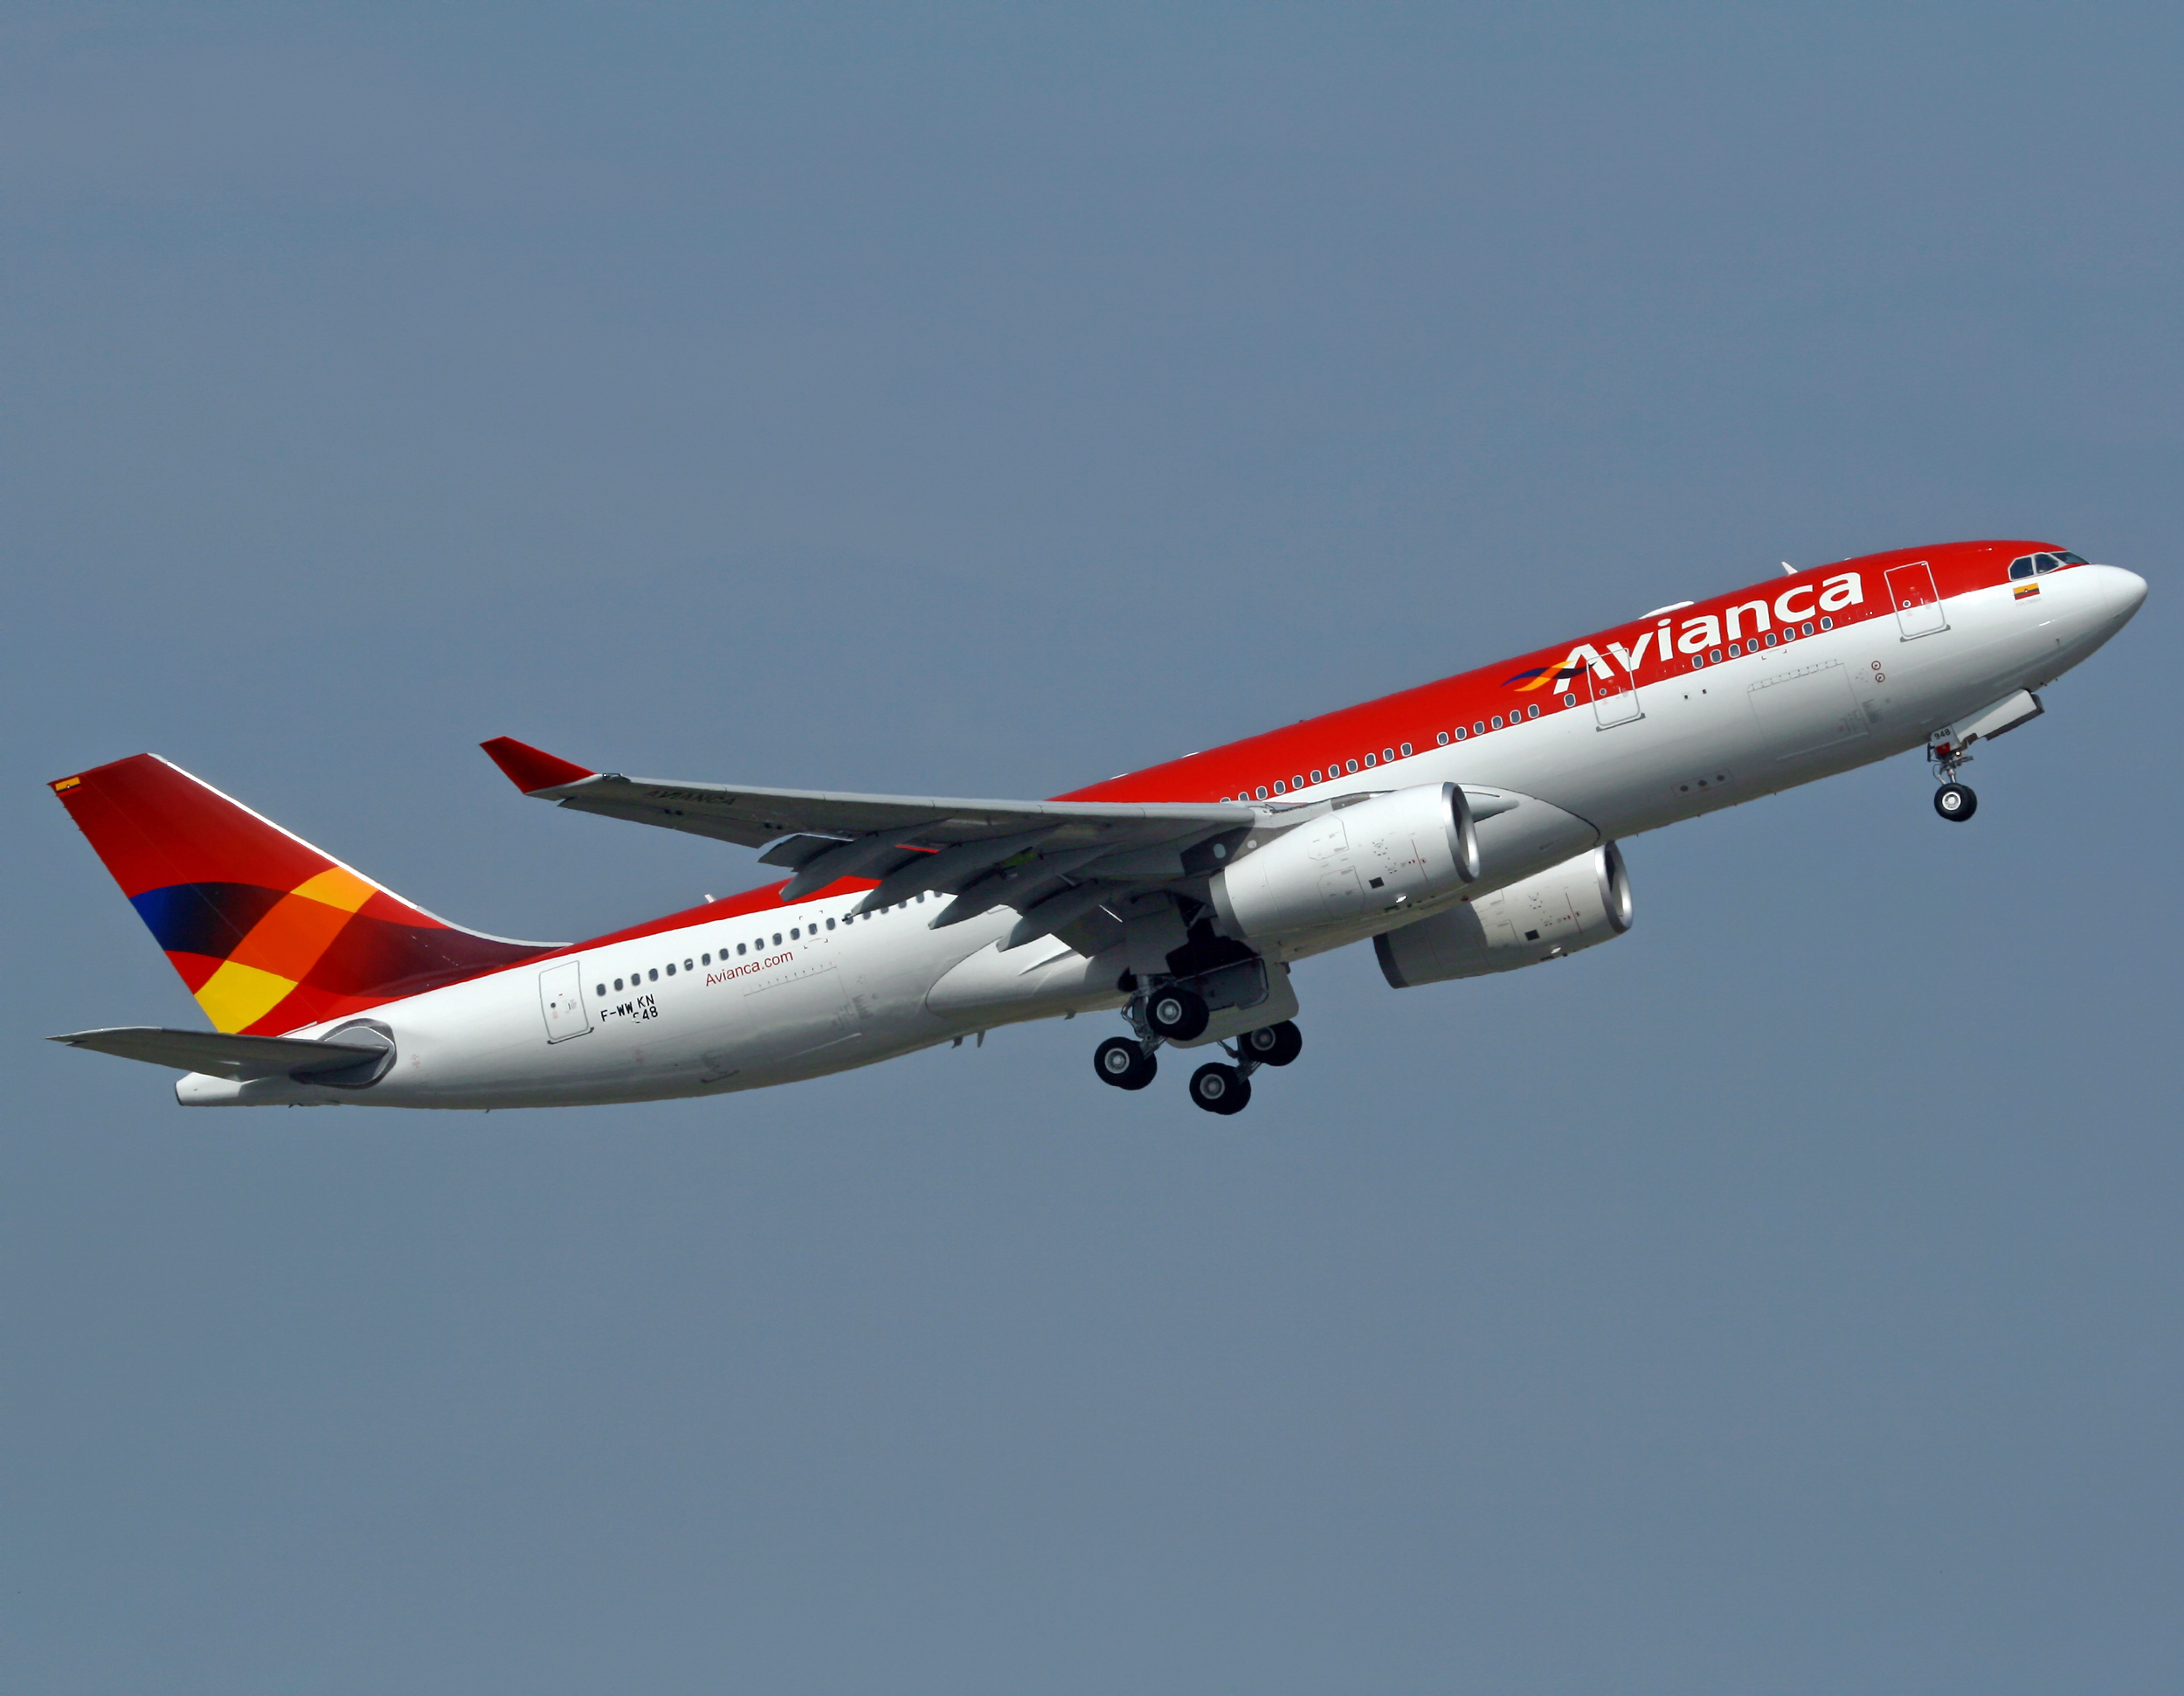 Photo of Avianca Airbus A330-200